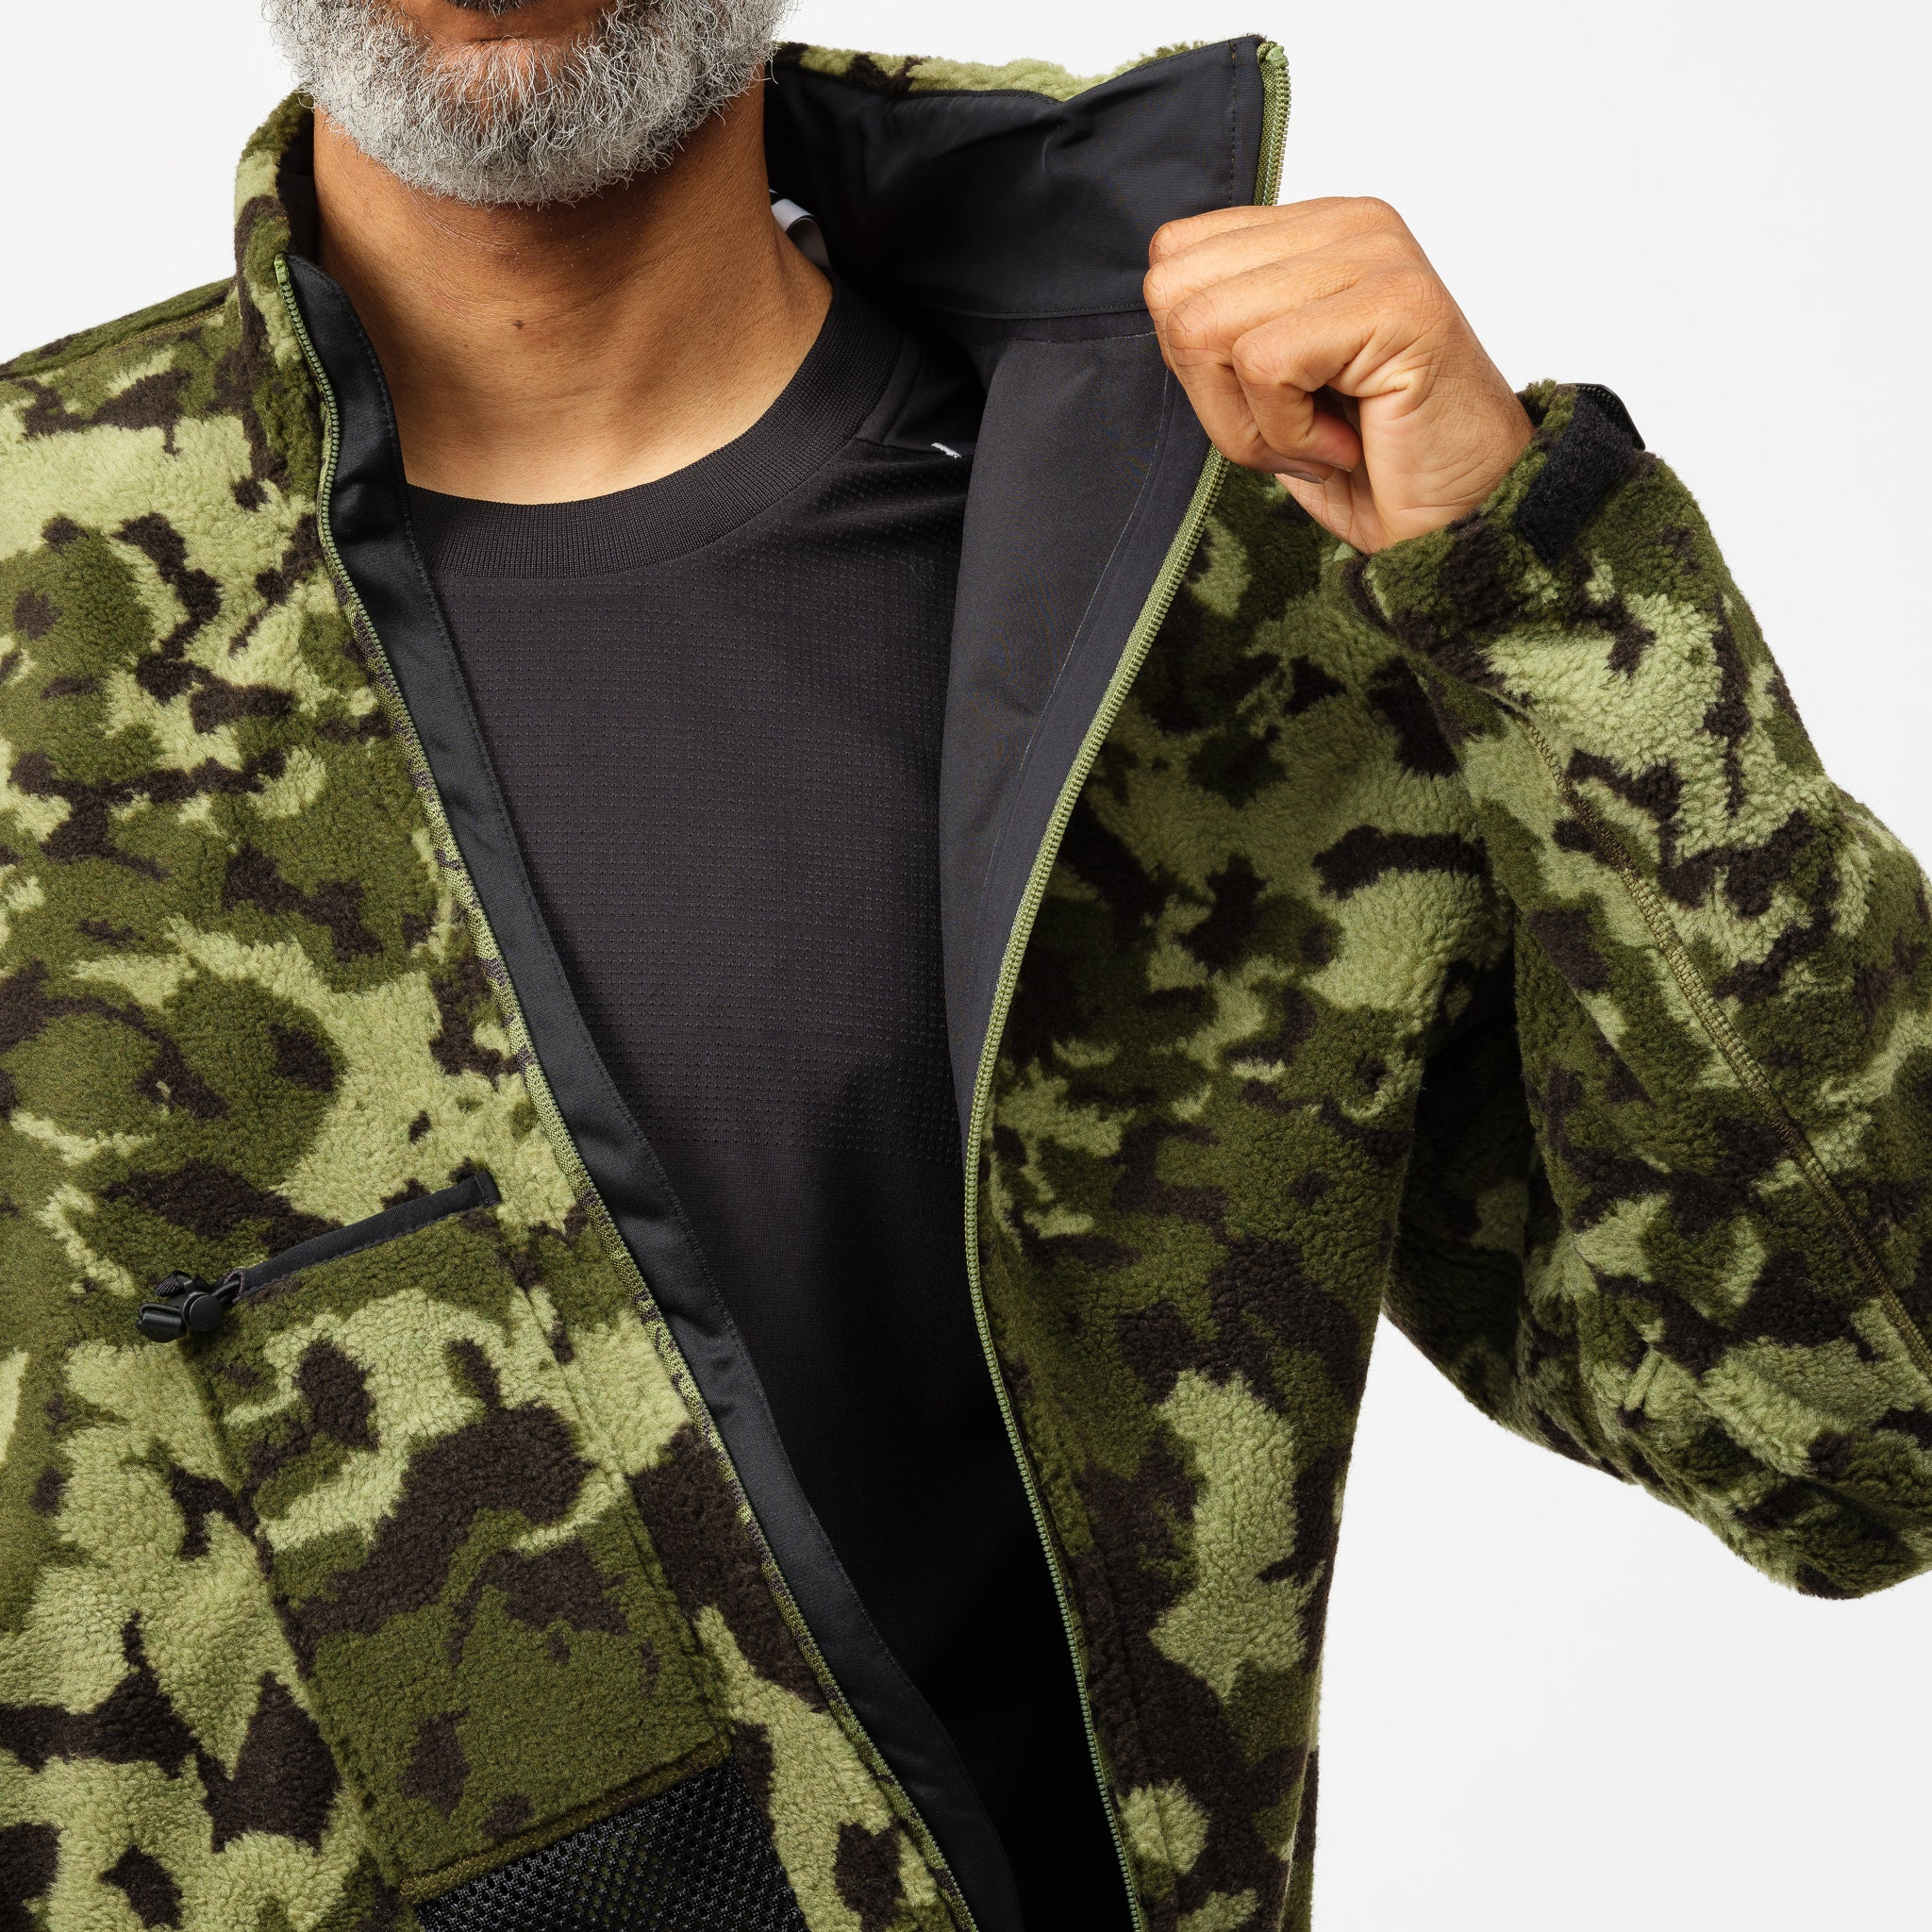 MMW 2-in-1 Hooded Fleece Jacket in Black/Green